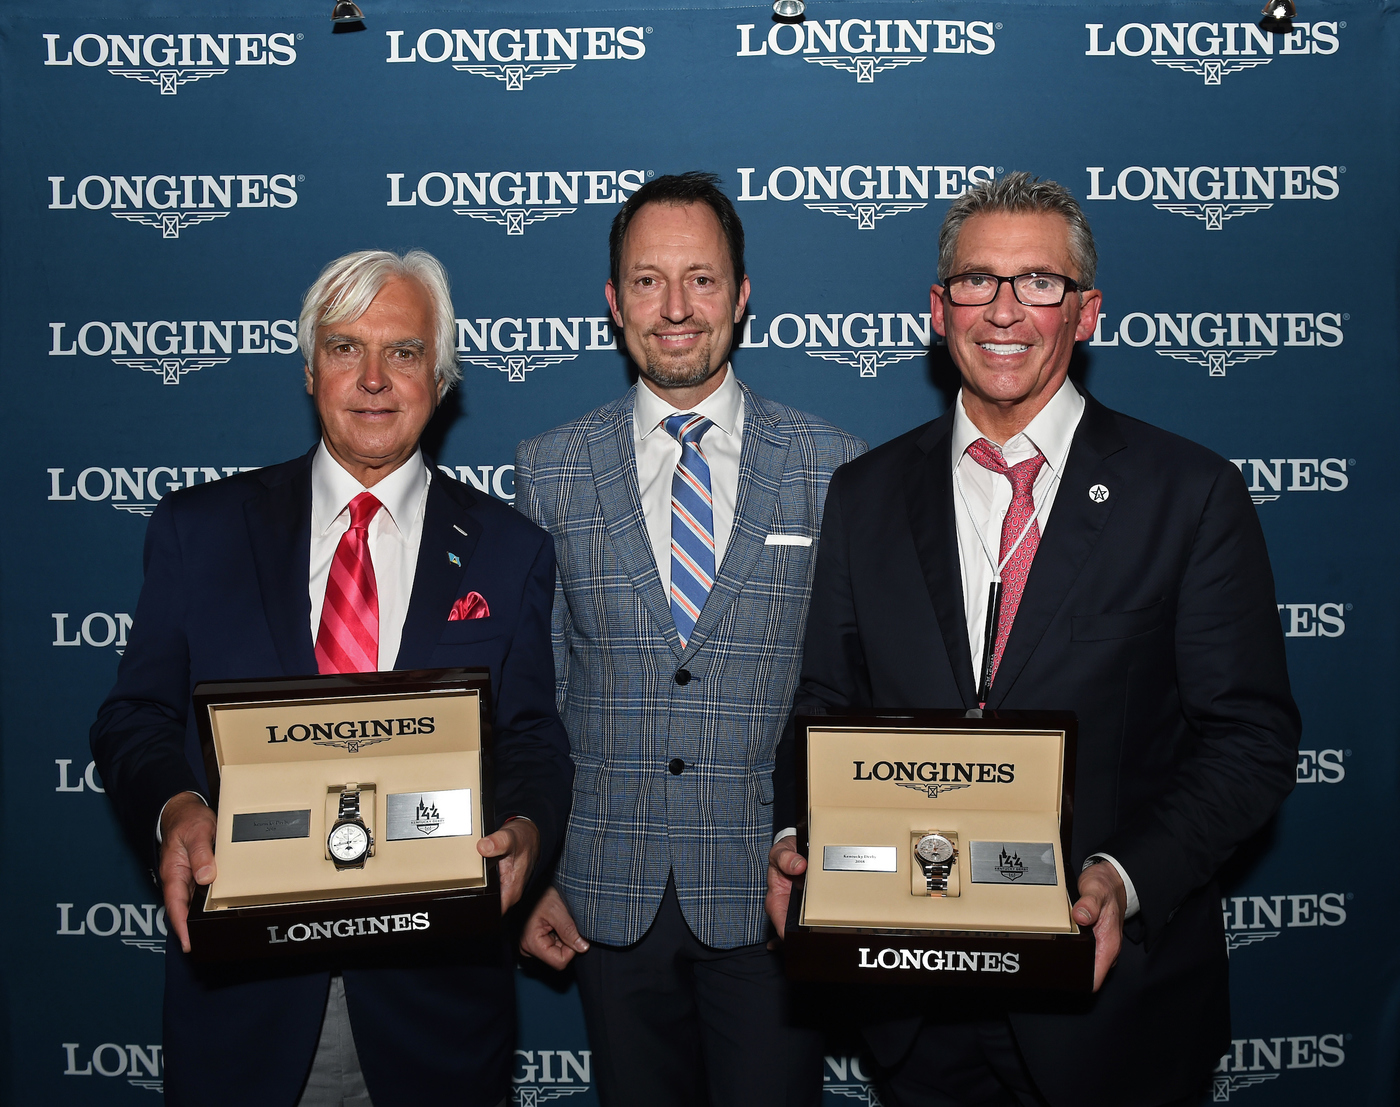 Longines Flat Racing Event: Longines Honors Justify's Kentucky Derby Victory  2